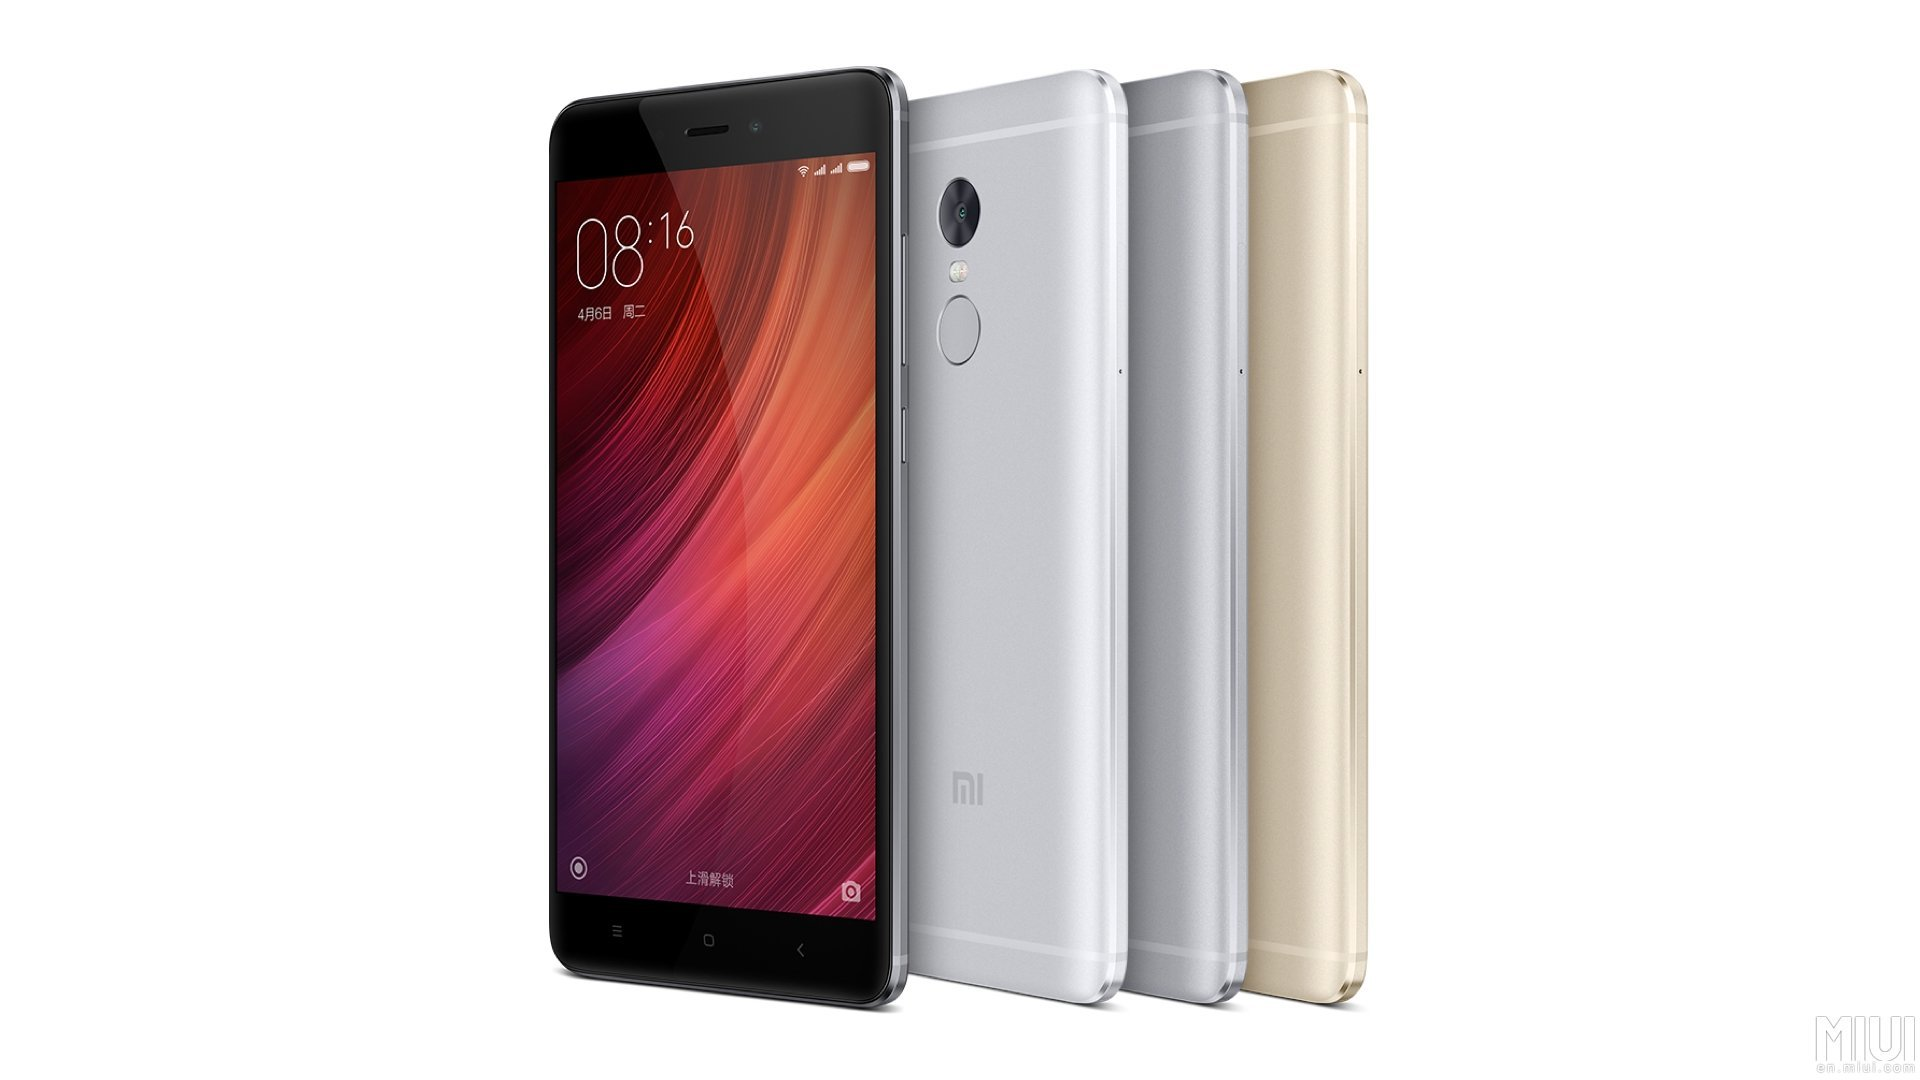 Tech'spresso : le Xiaomi Redmi Note 4 officiel, le Note 7 victime de son succès, et Backstage